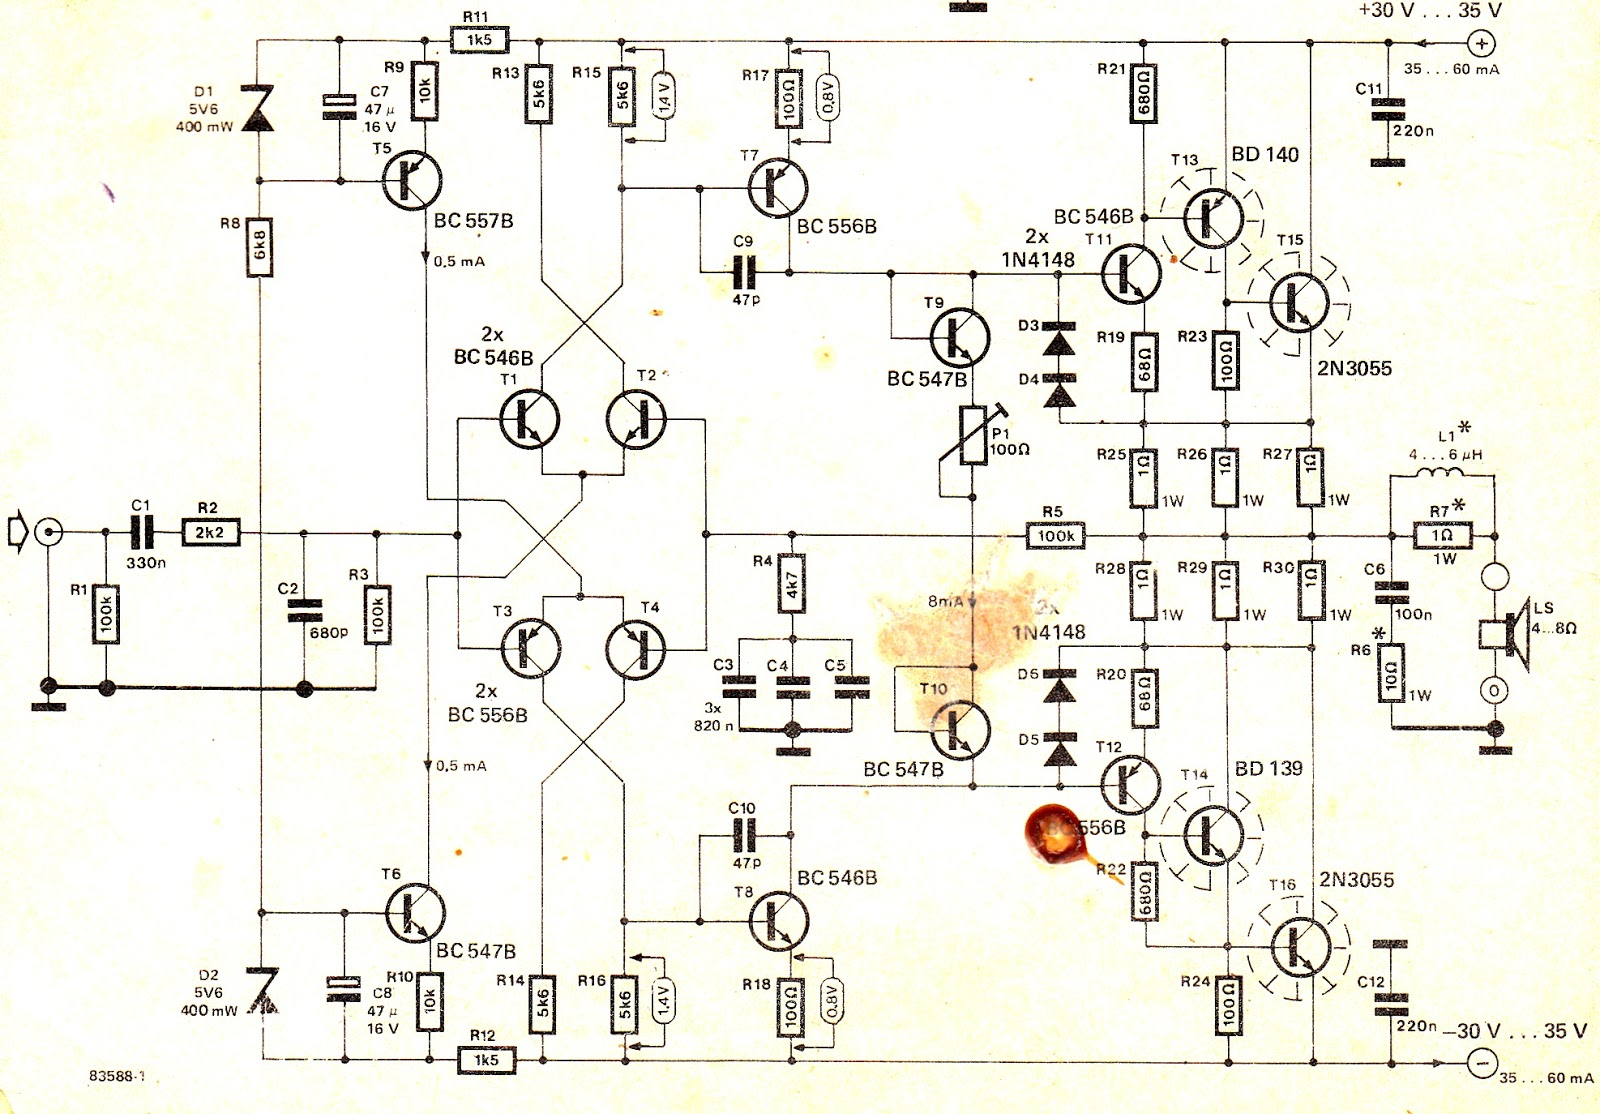 100w subwoofer amplifier circuit diagram yellowstone volcano ahuja power images